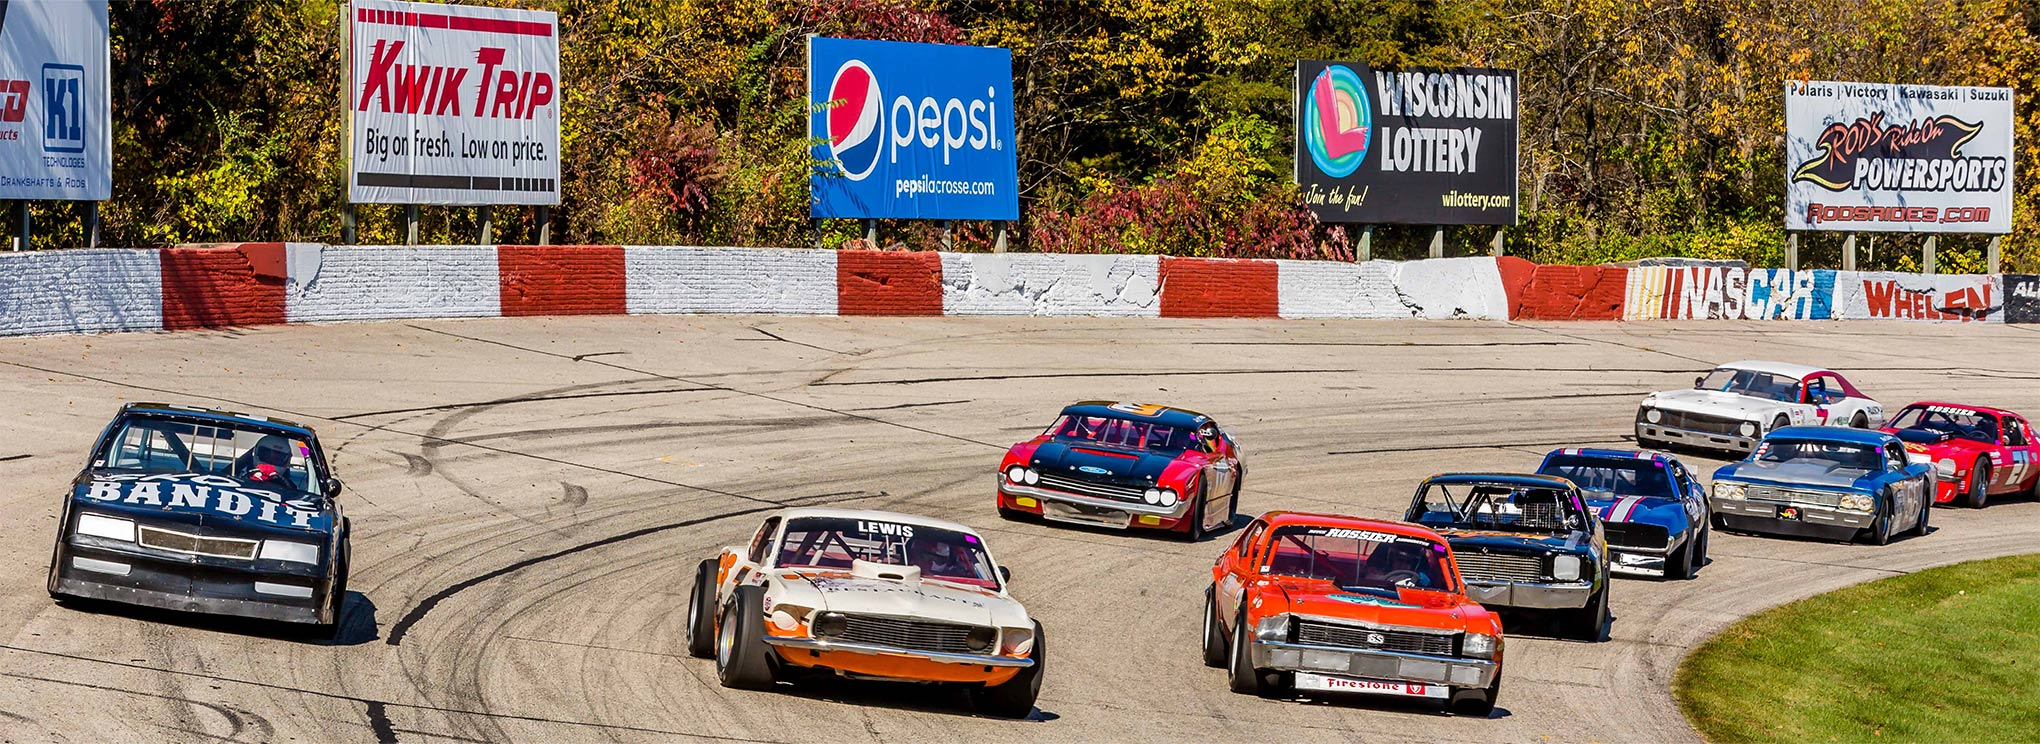 There is plenty of action in the Upper Midwest Vintage Racing Series. Although they race respectfully and refrain from contact, there is no shortage of intense racing.